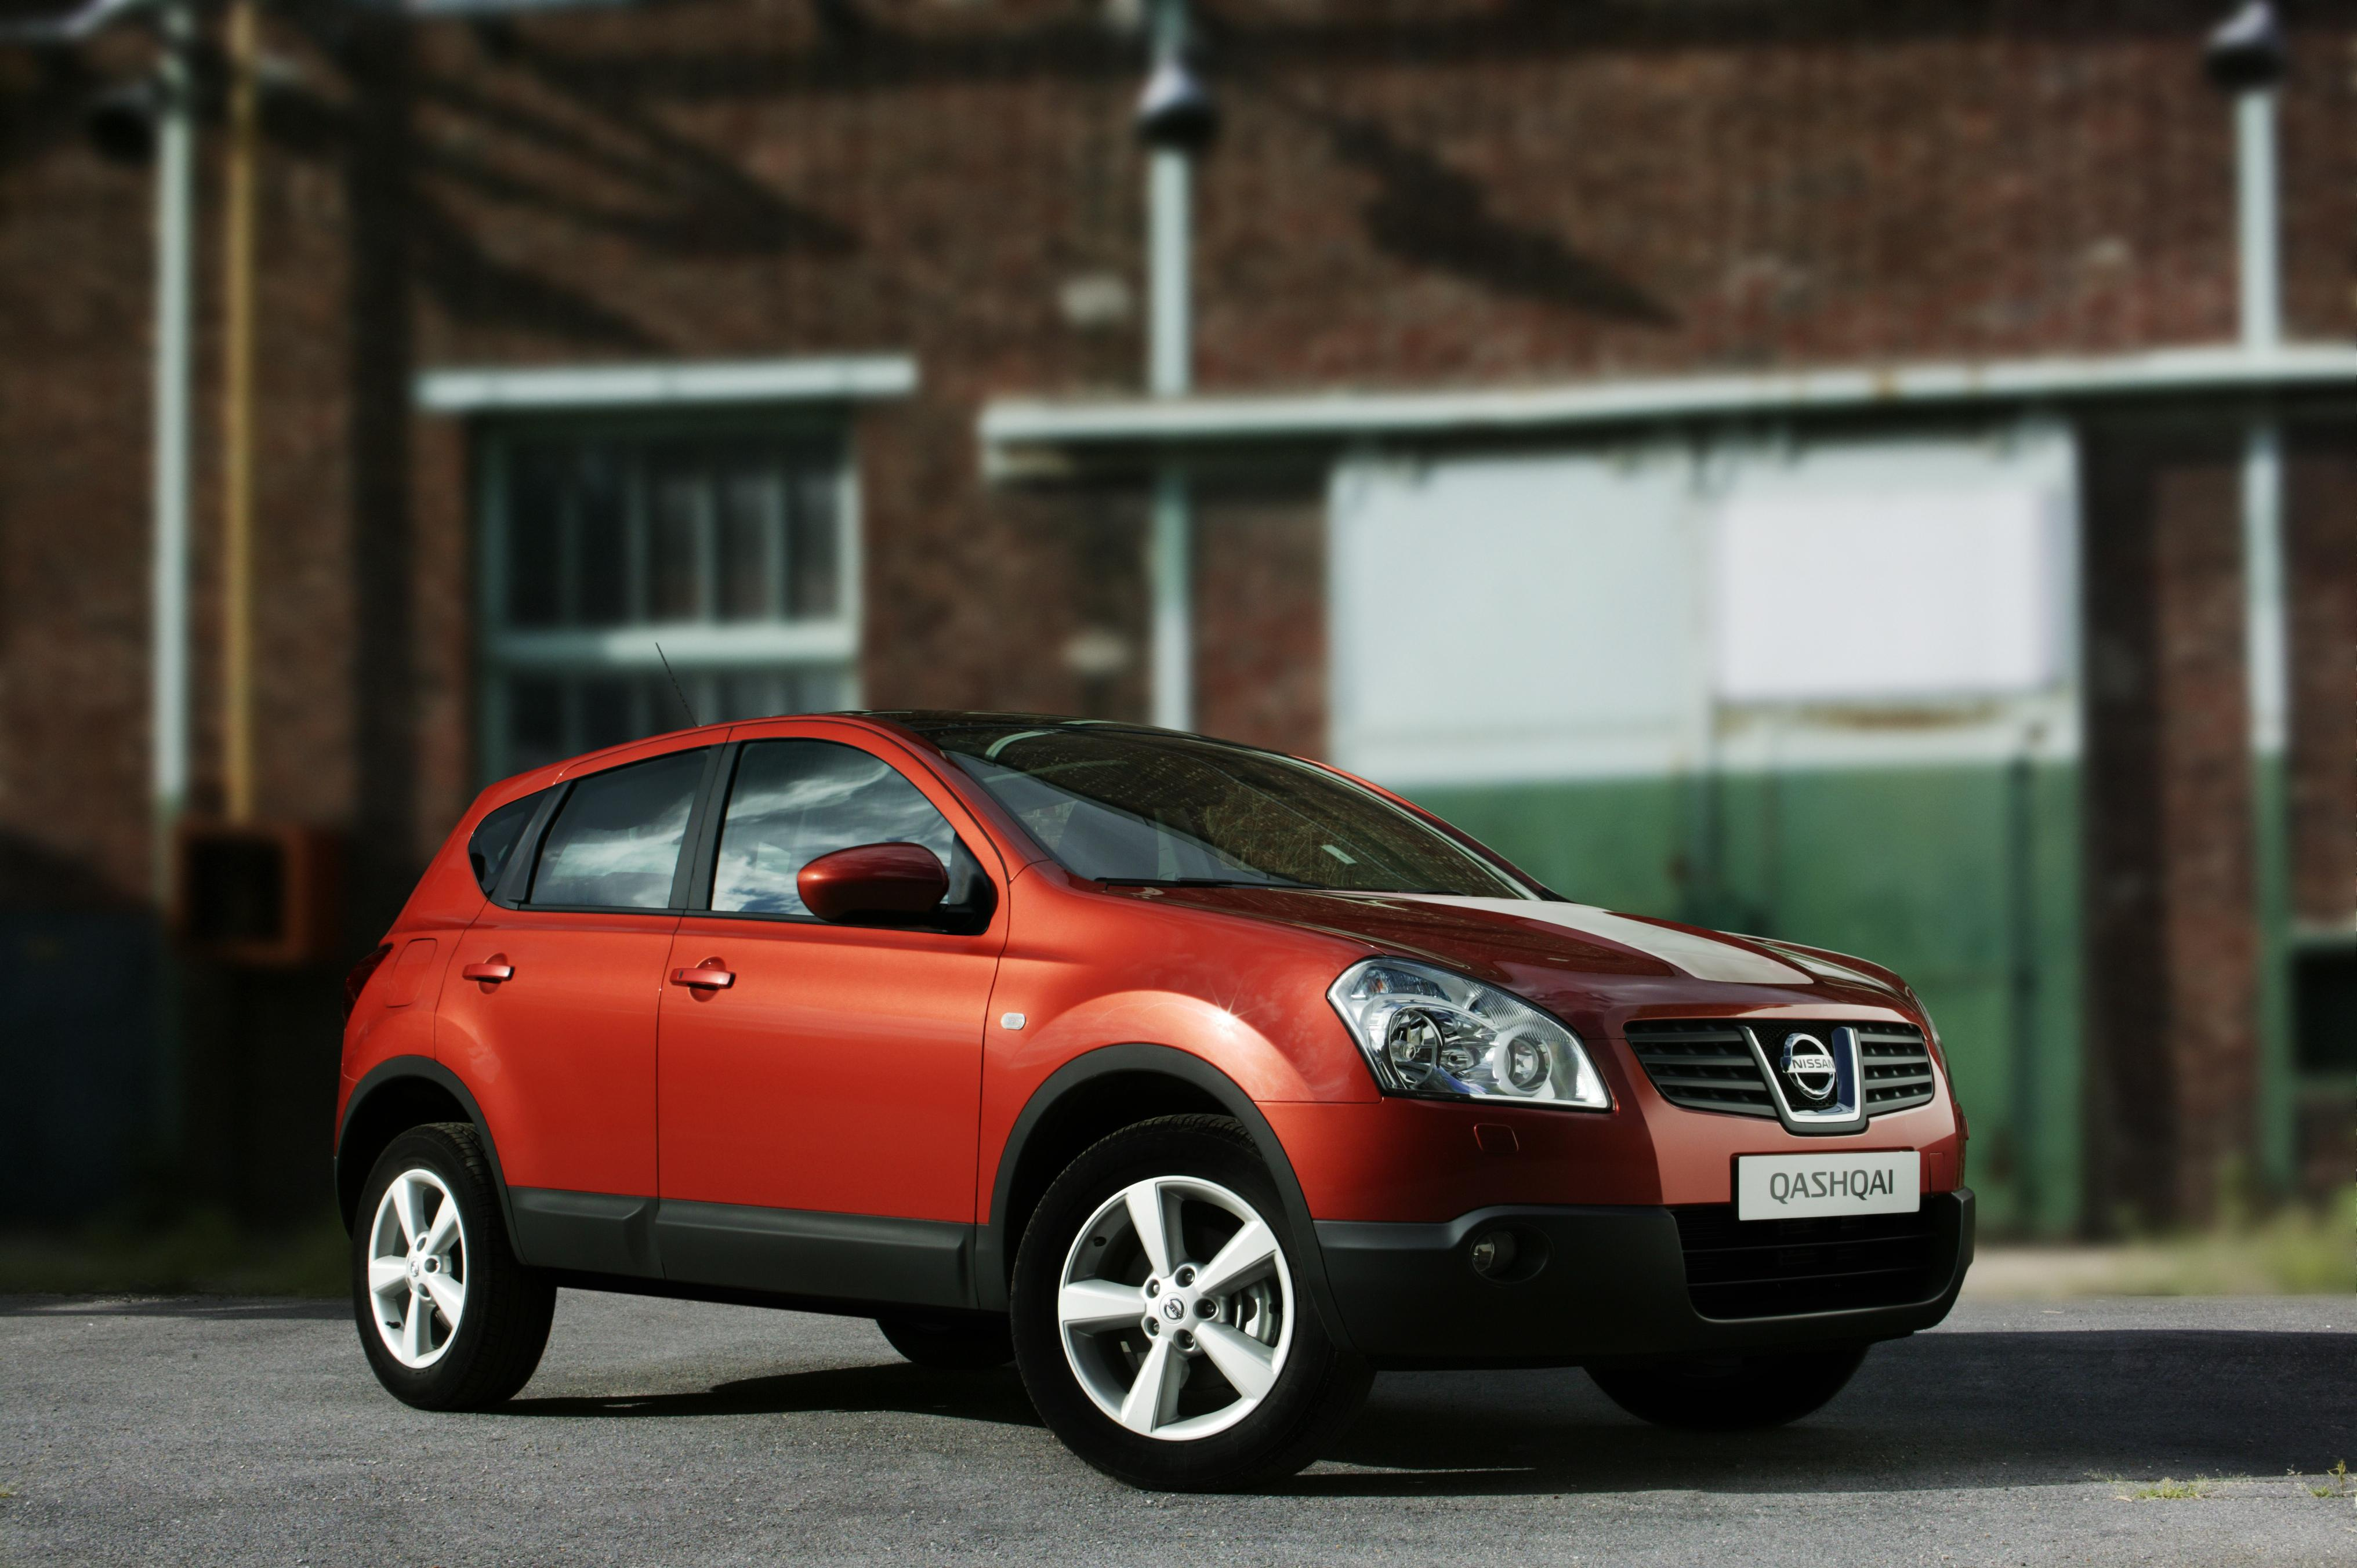 2007 nissan qashqai gallery 144590 top speed. Black Bedroom Furniture Sets. Home Design Ideas